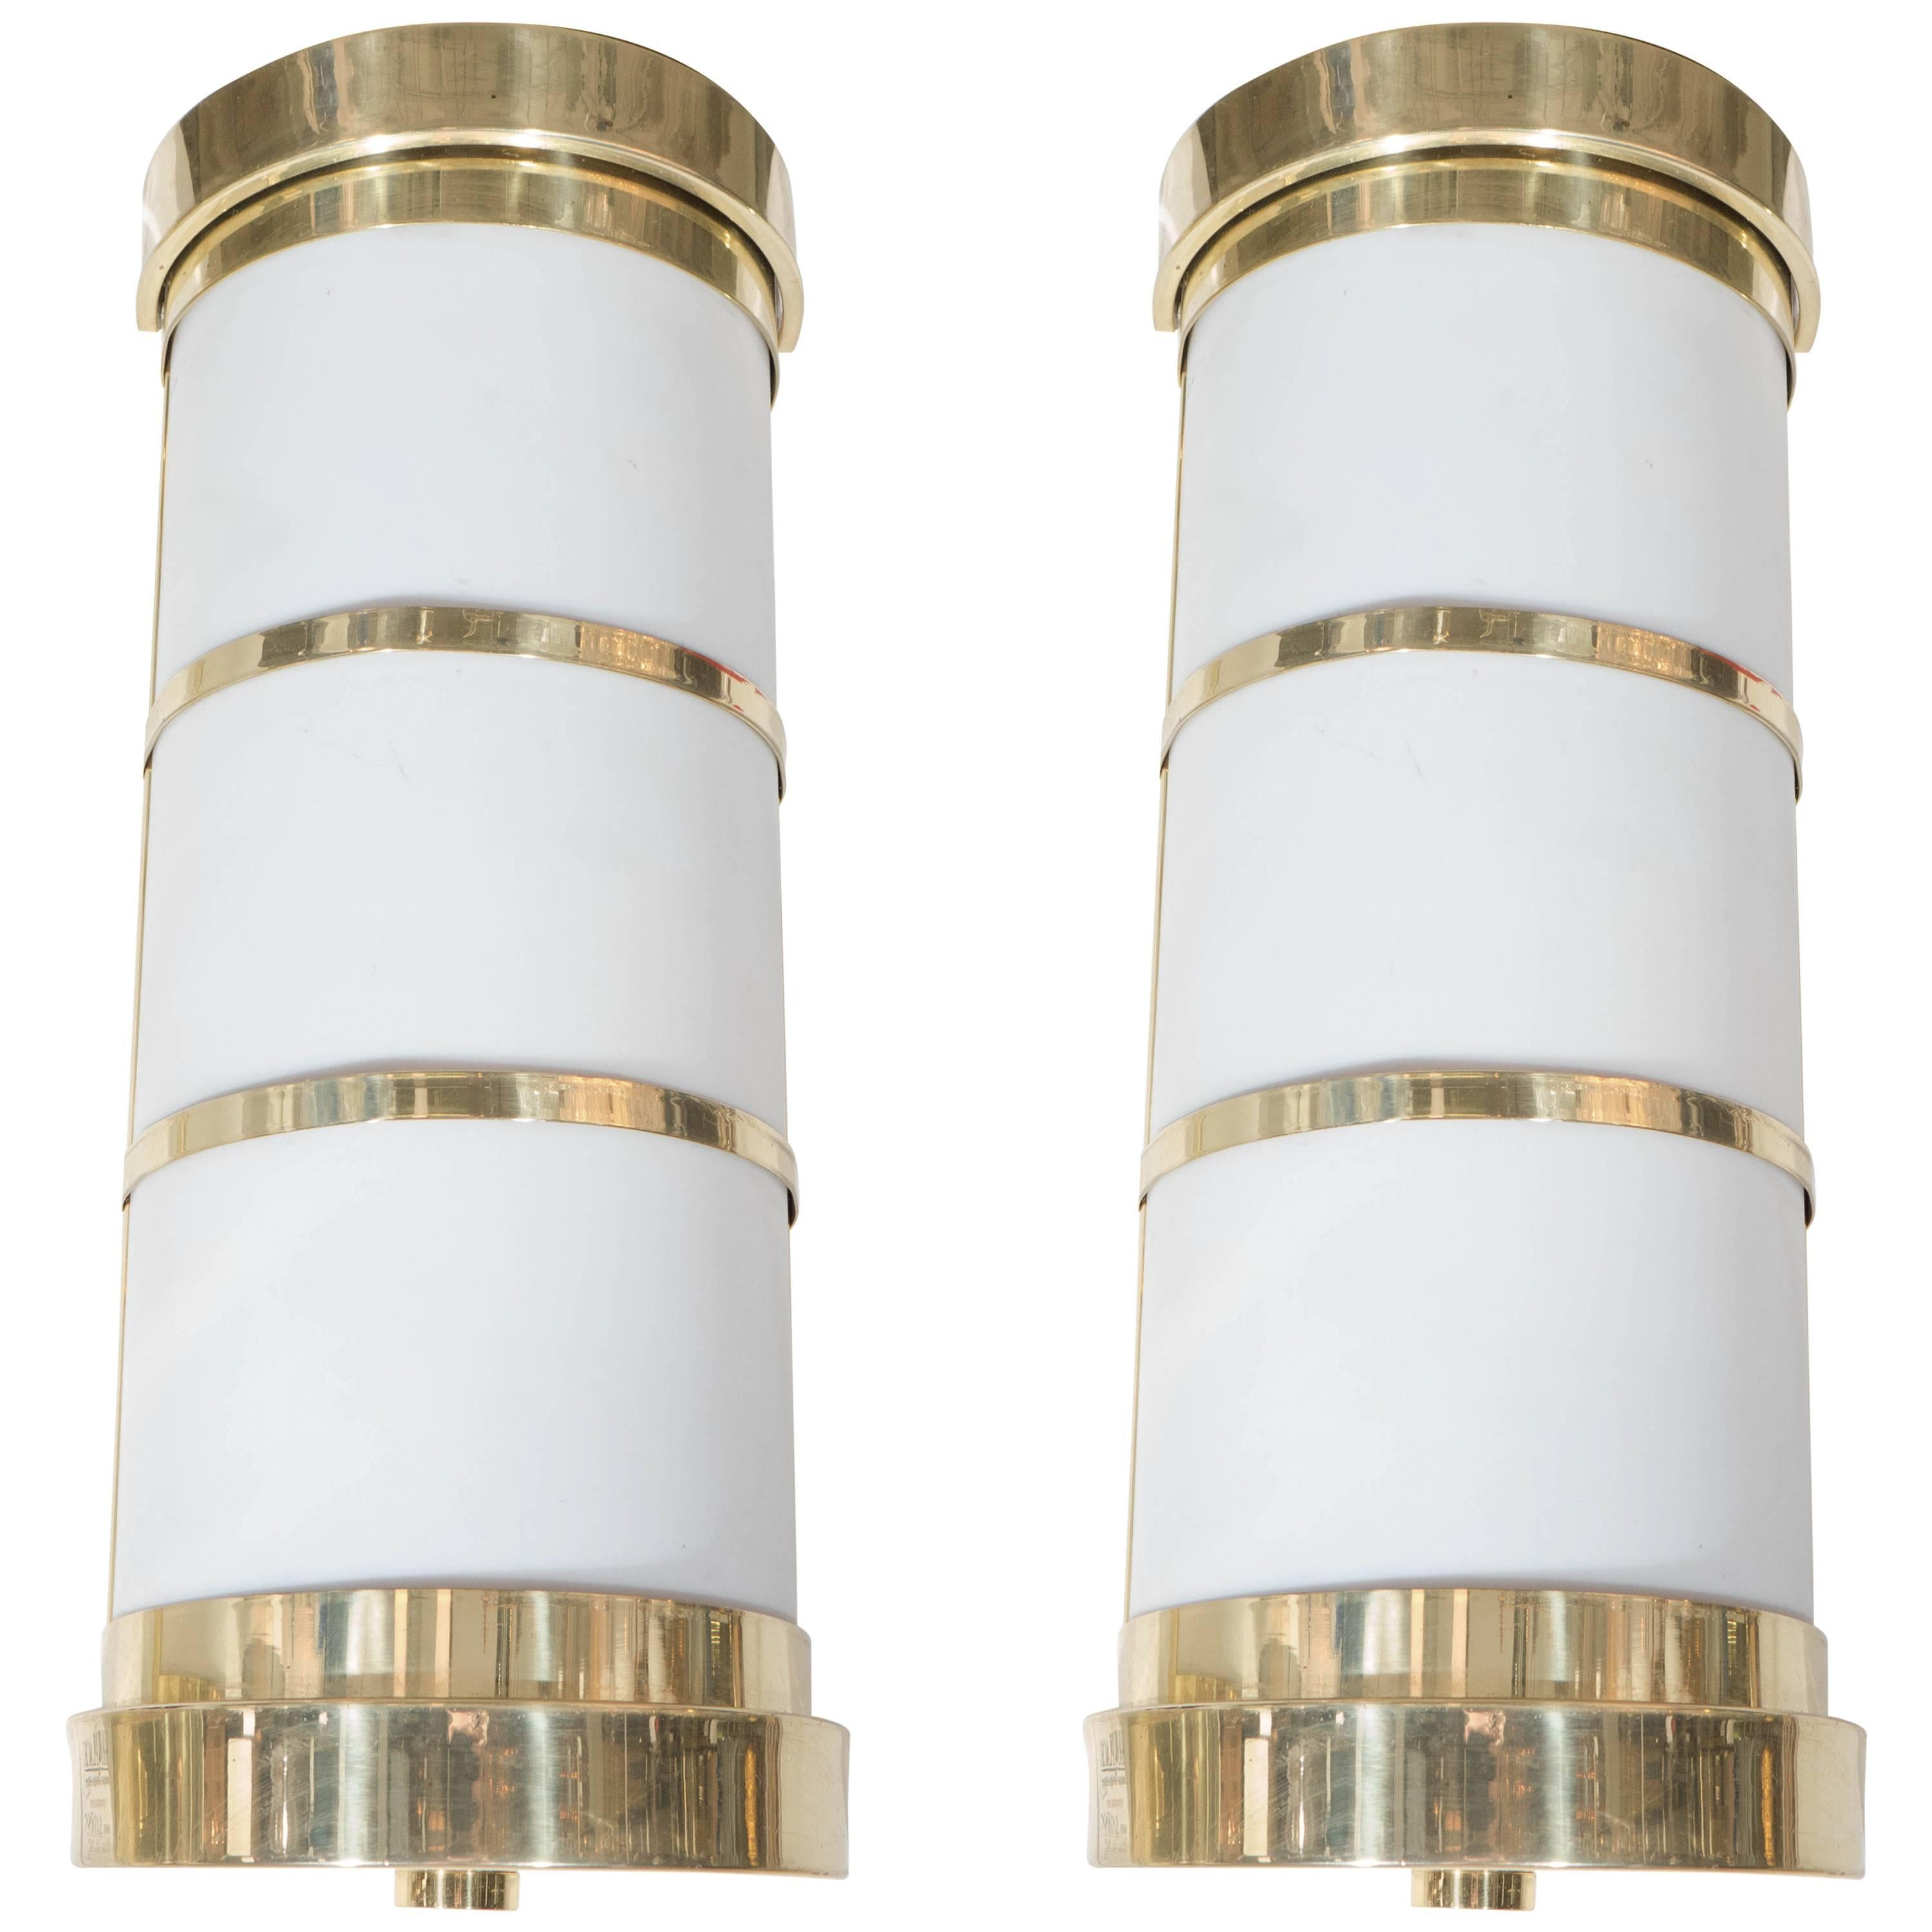 Pair of Cylindrical Wall Sconces in Frosted Acrylic and Brass